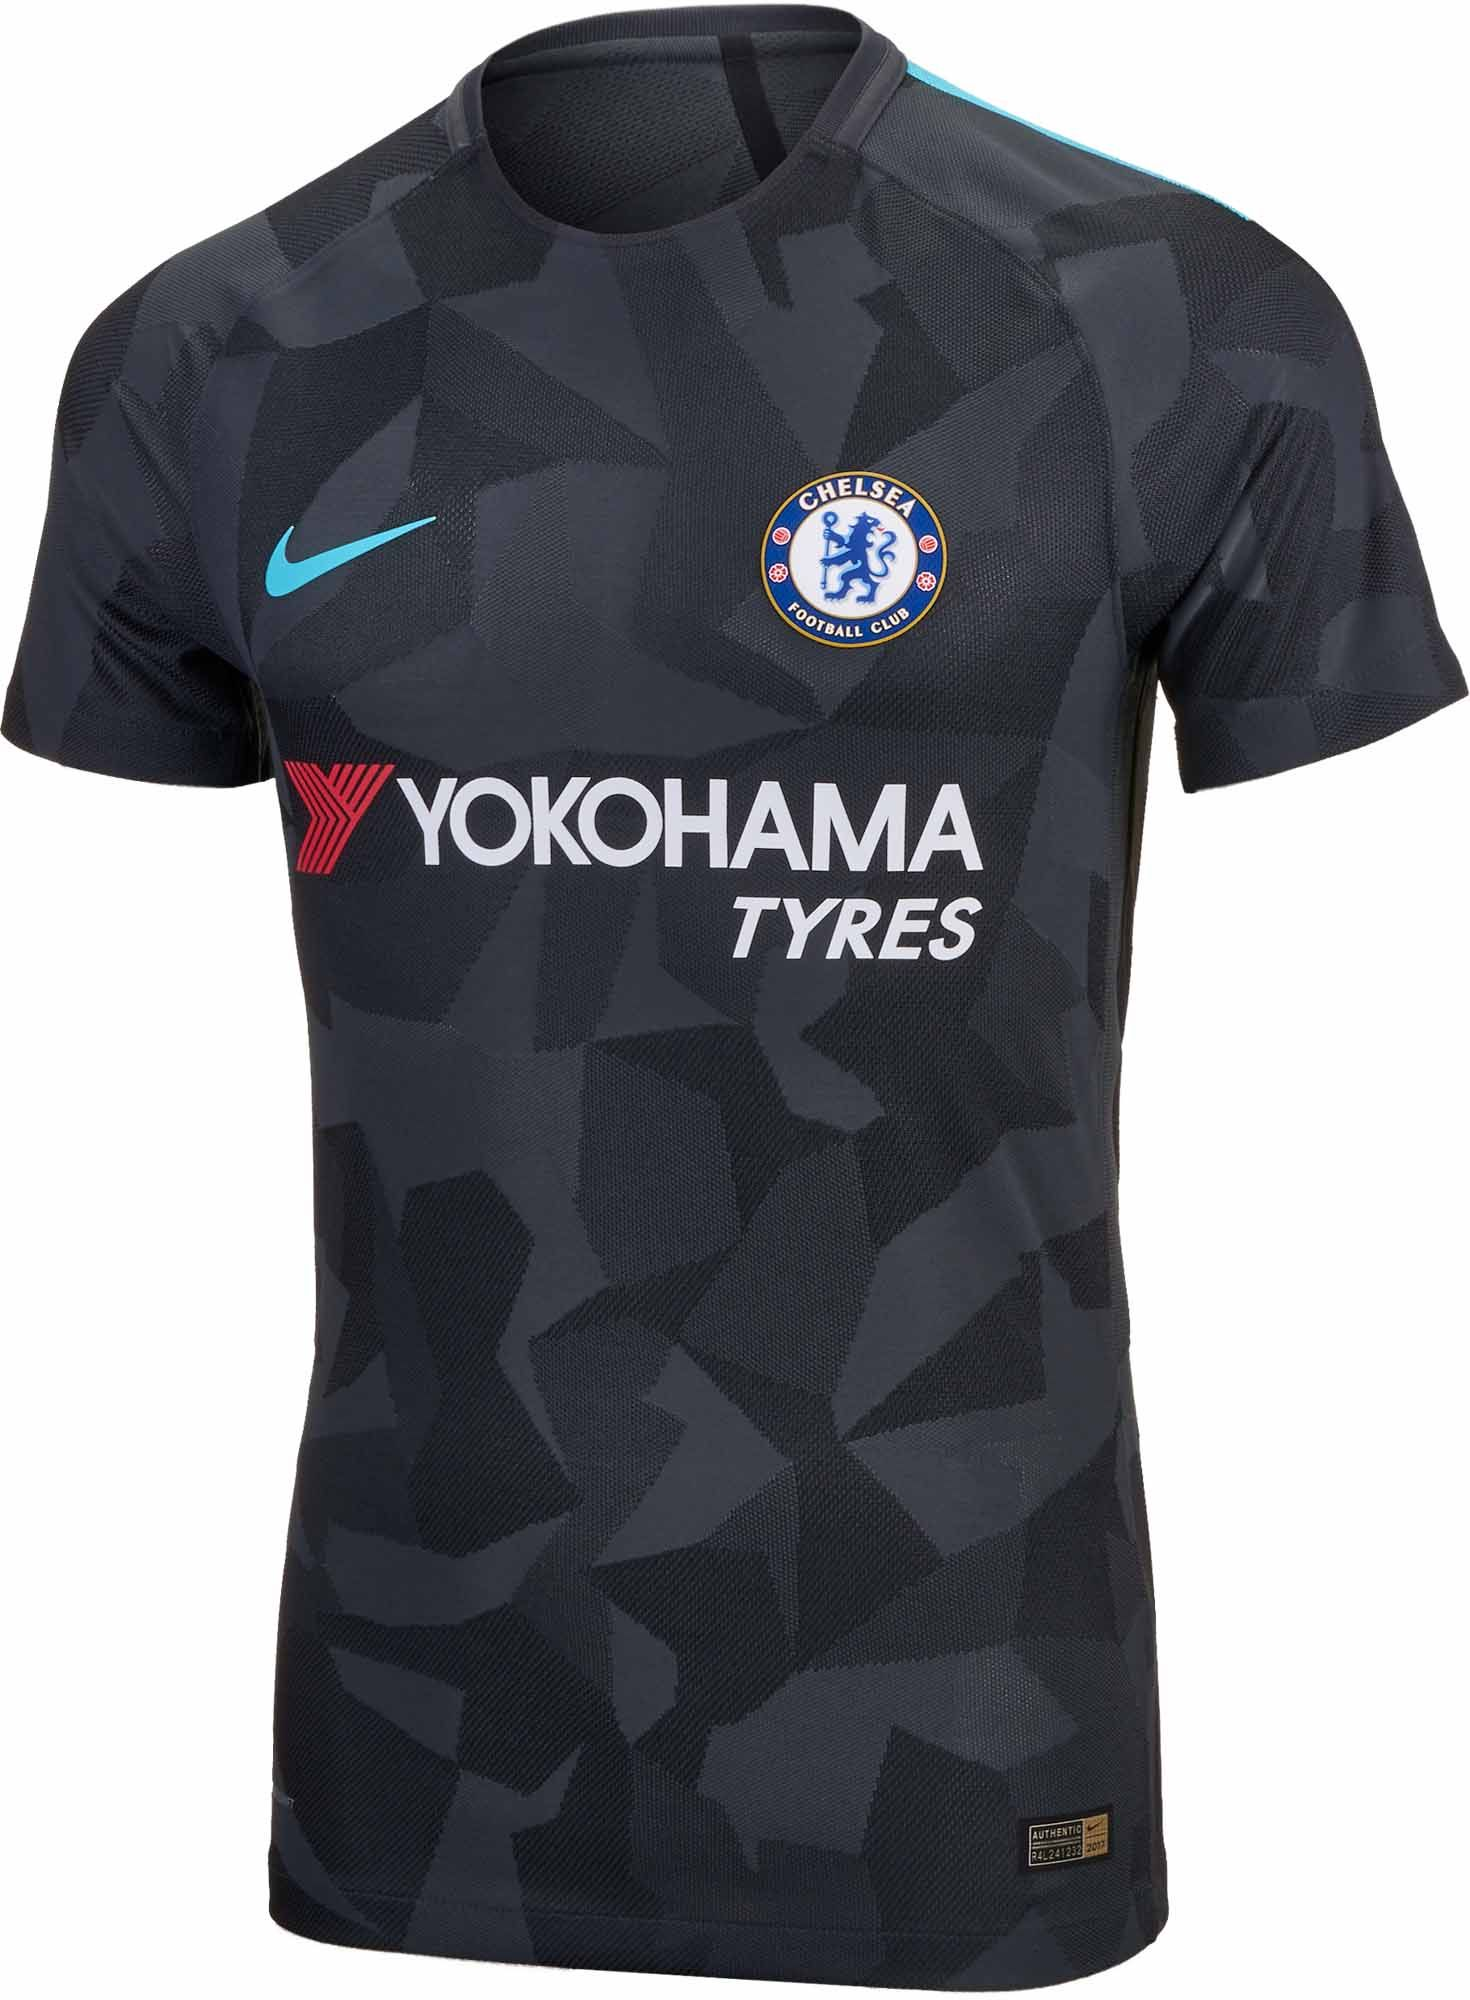 ed227be841 2017 18 Nike Chelsea 3rd Match Jersey. Buy it on clearance from  www.soccerpro.com